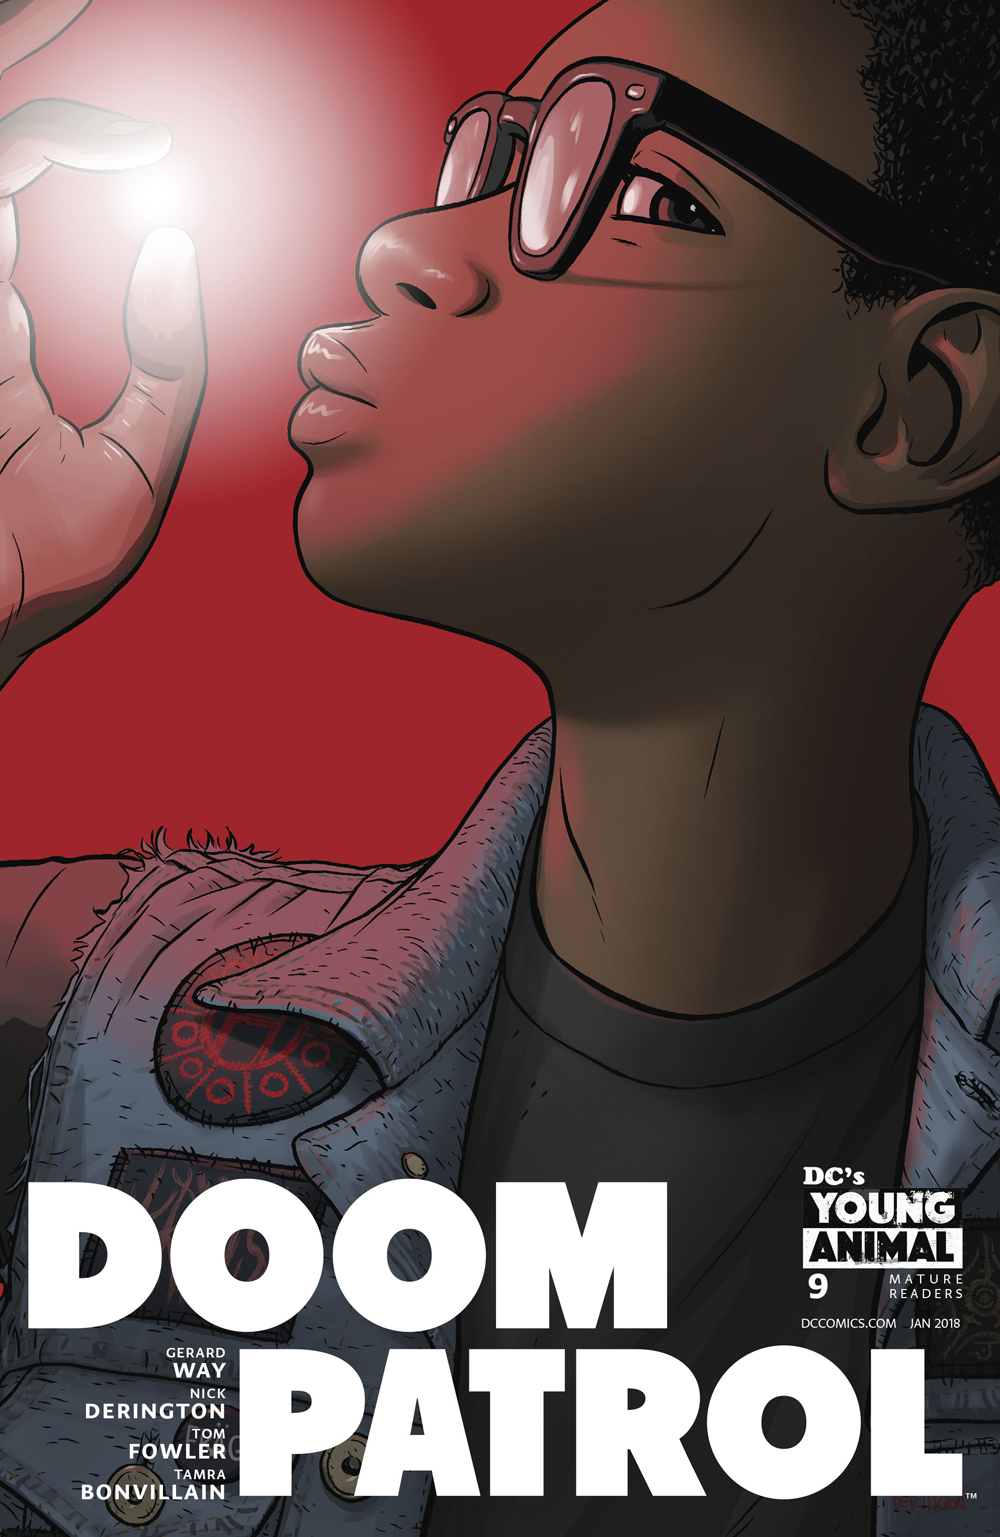 DOOM PATROL #9 (RES) (MR)